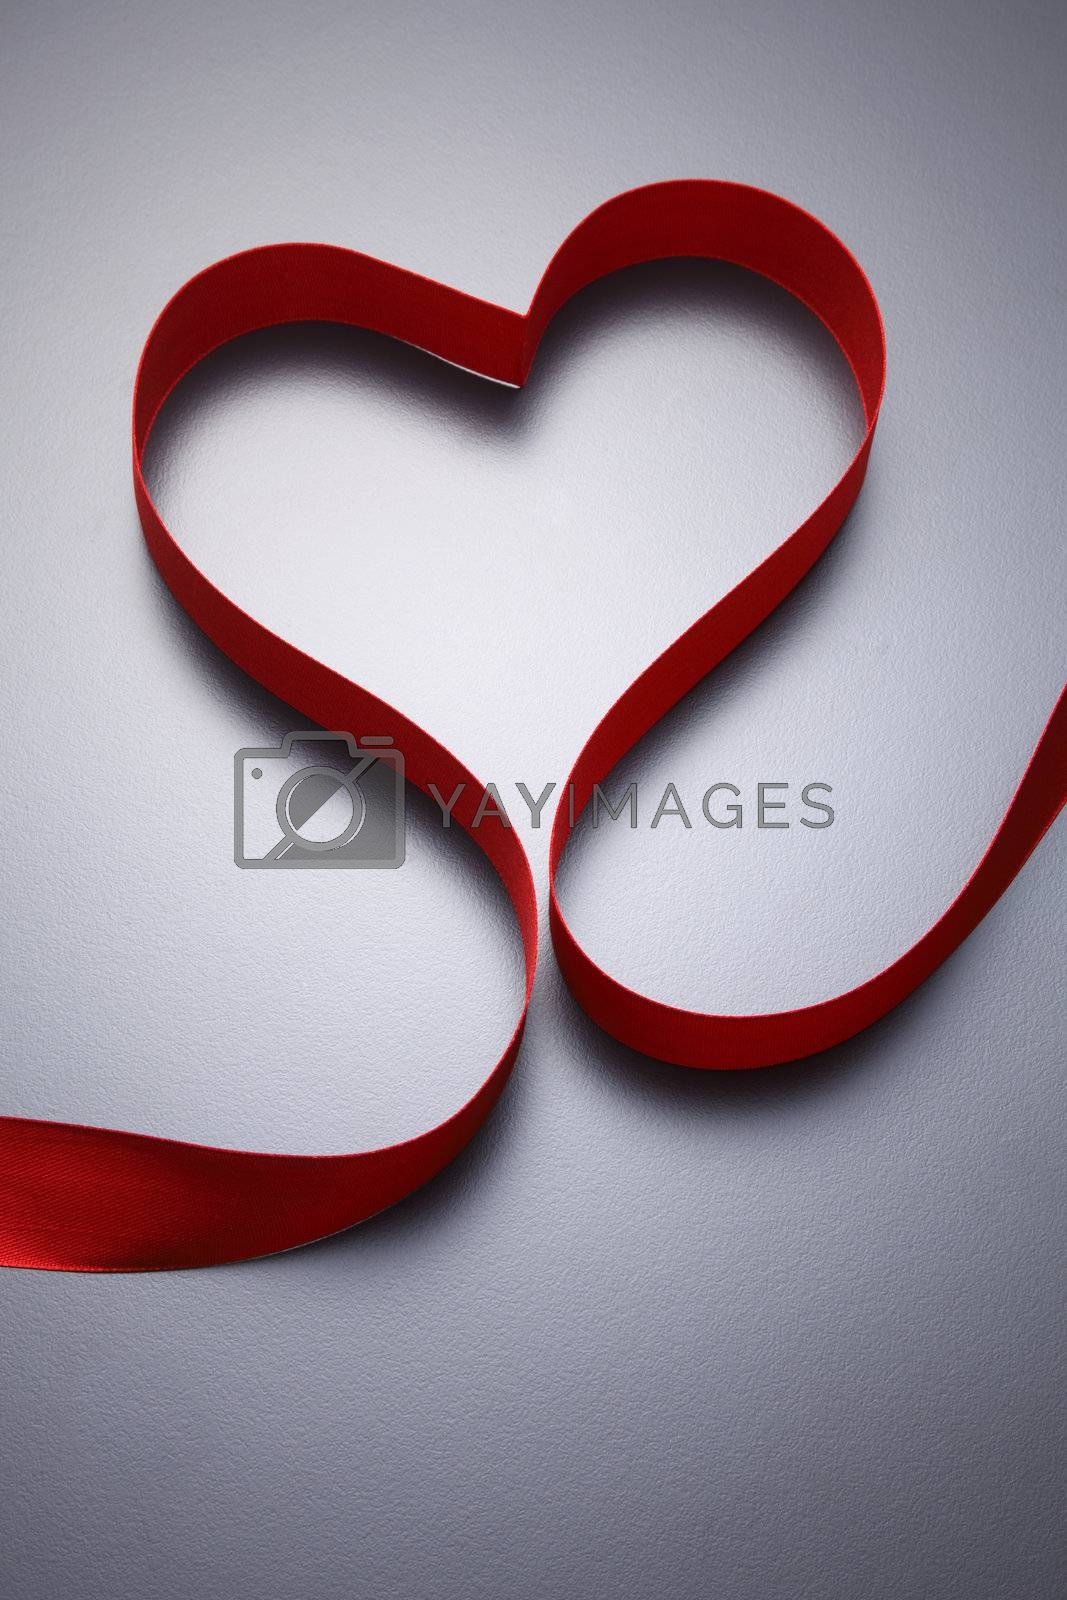 stock images of Heart shape made  from ribbon